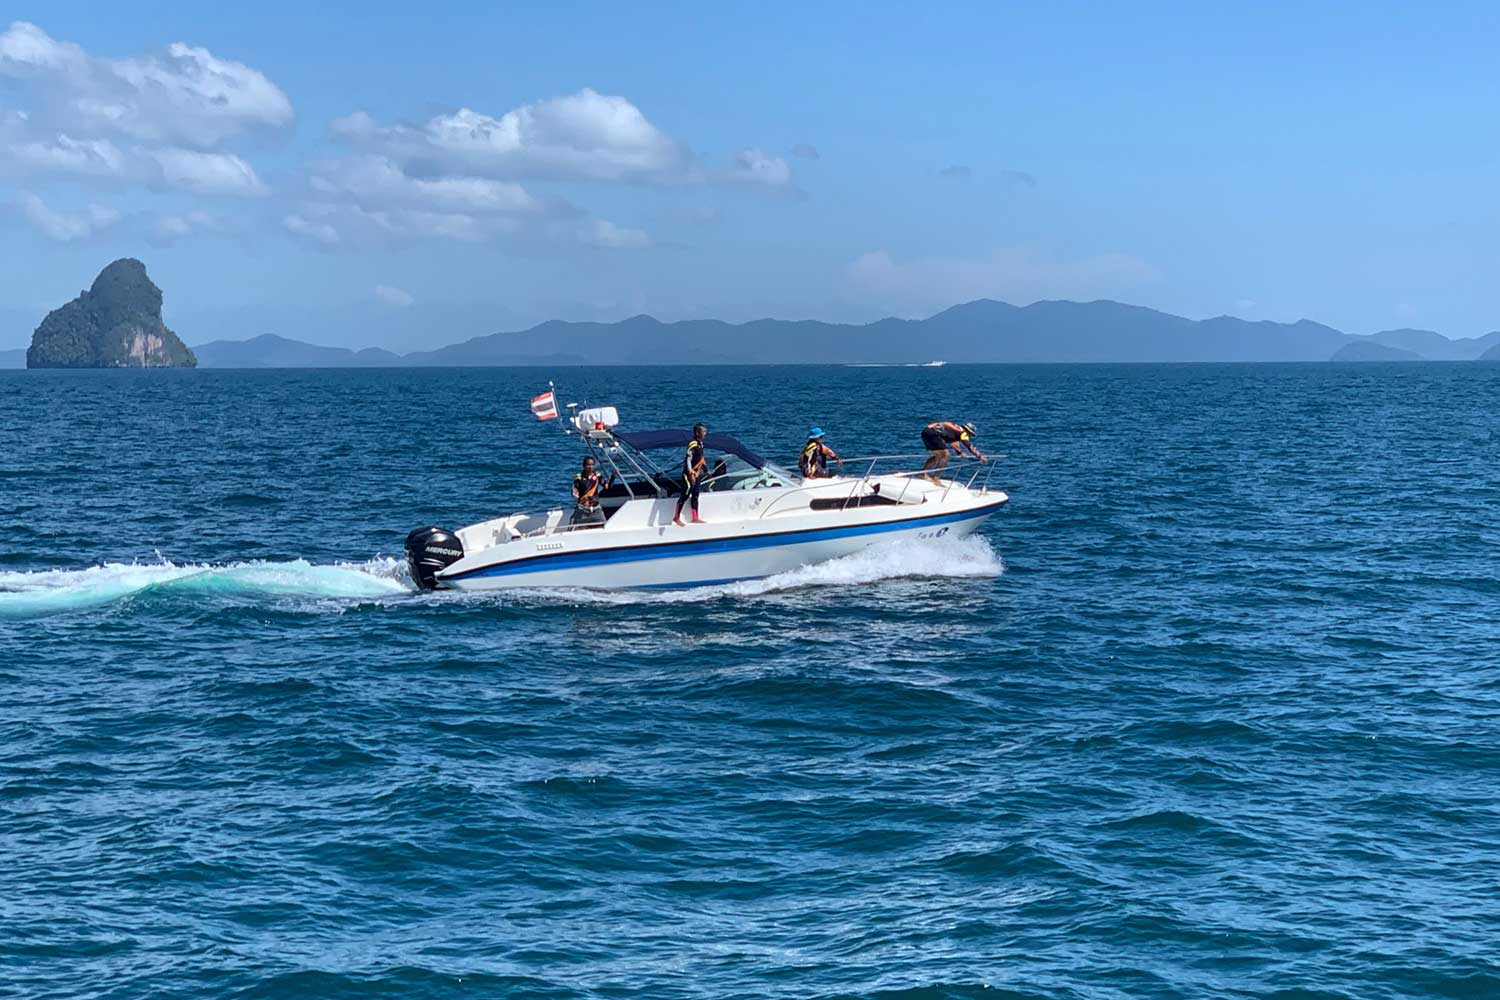 Divers on Thursday continued the search for a missing crew member of a speedboat that  crashed into a luxury yacht near Kor Khai Nok off Phangnga province on Wednesday afternoon. The speedboat captain was killed and 12 of the 45 tourists he was carrying injured. (Photo by Achadtaya Chuenniran)